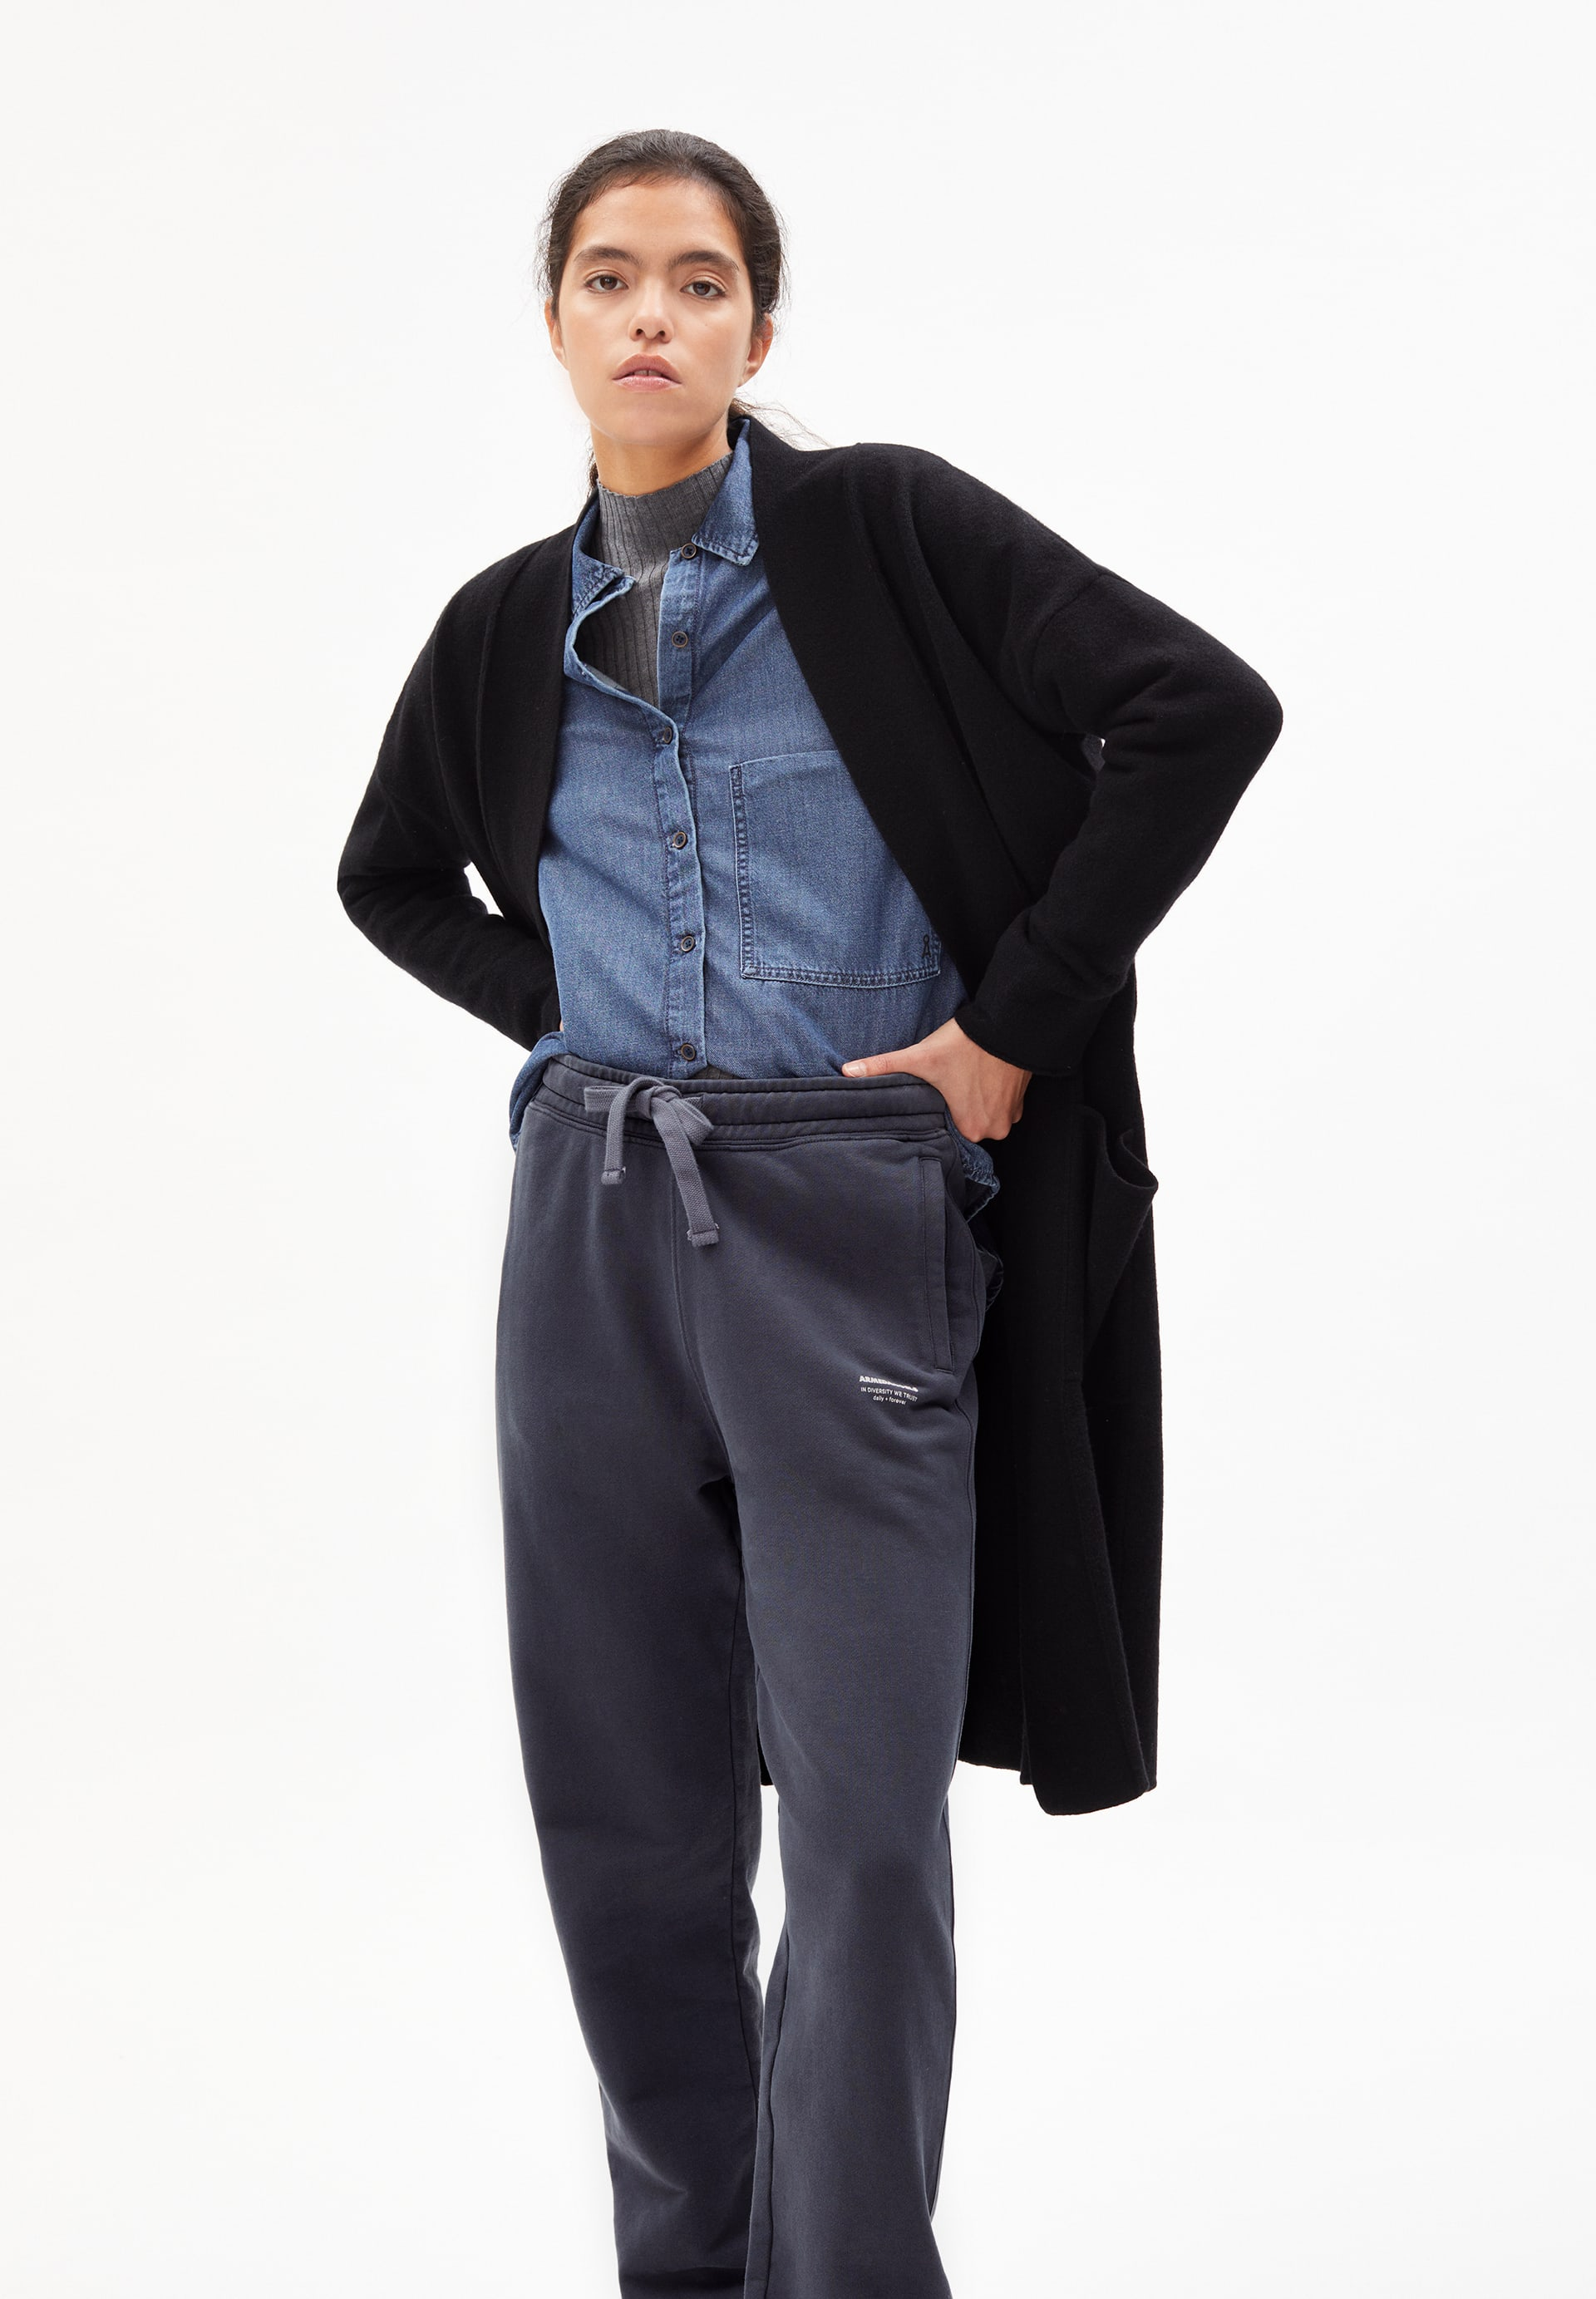 LAONAA RECYCLED WOOL Knit Coat made of Organic Wool Mix